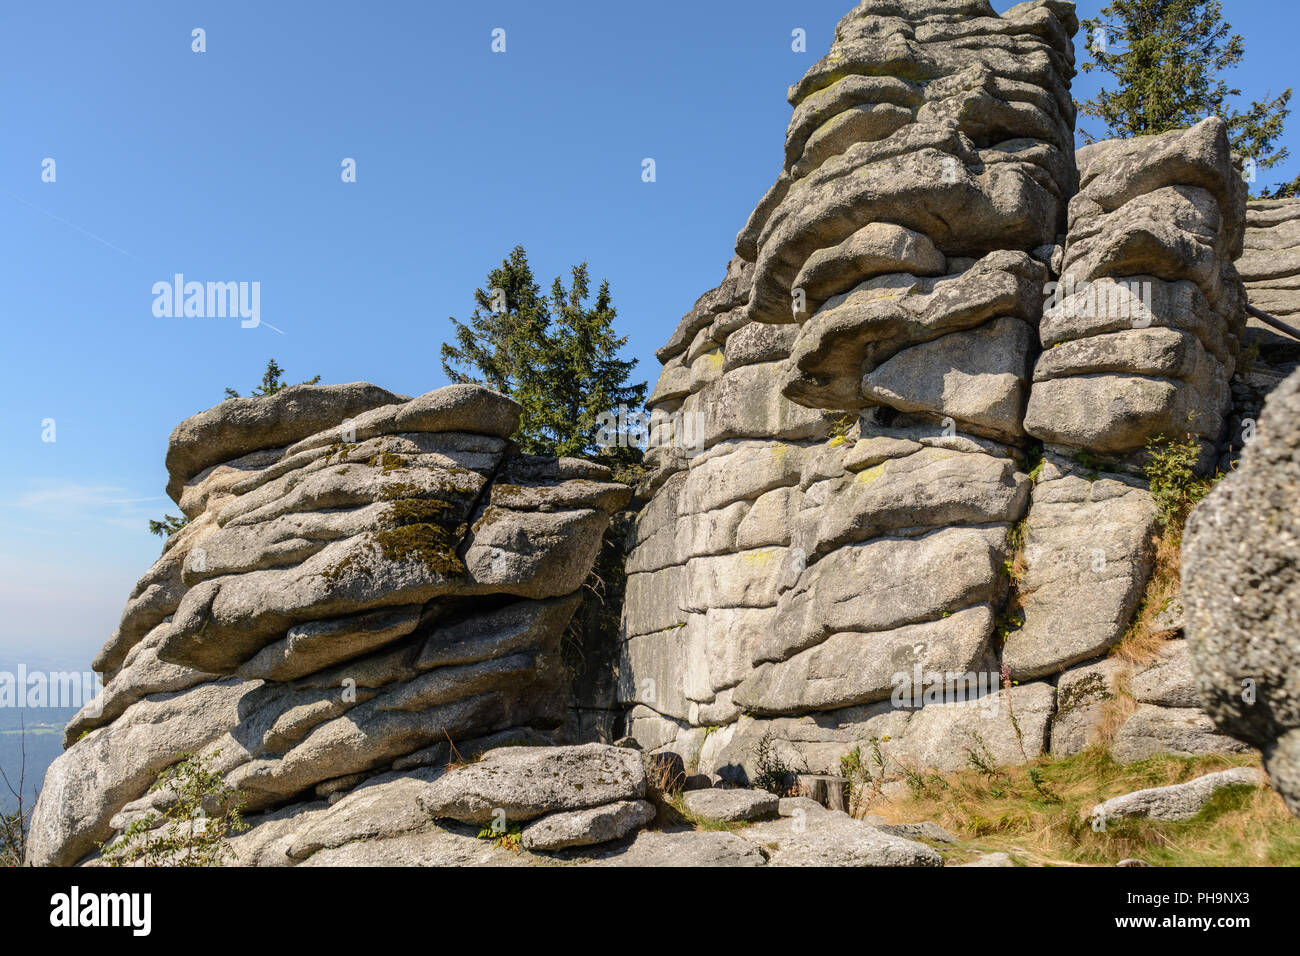 Granites and boulders in the Dreisesselberg nature reserve - Stock Image